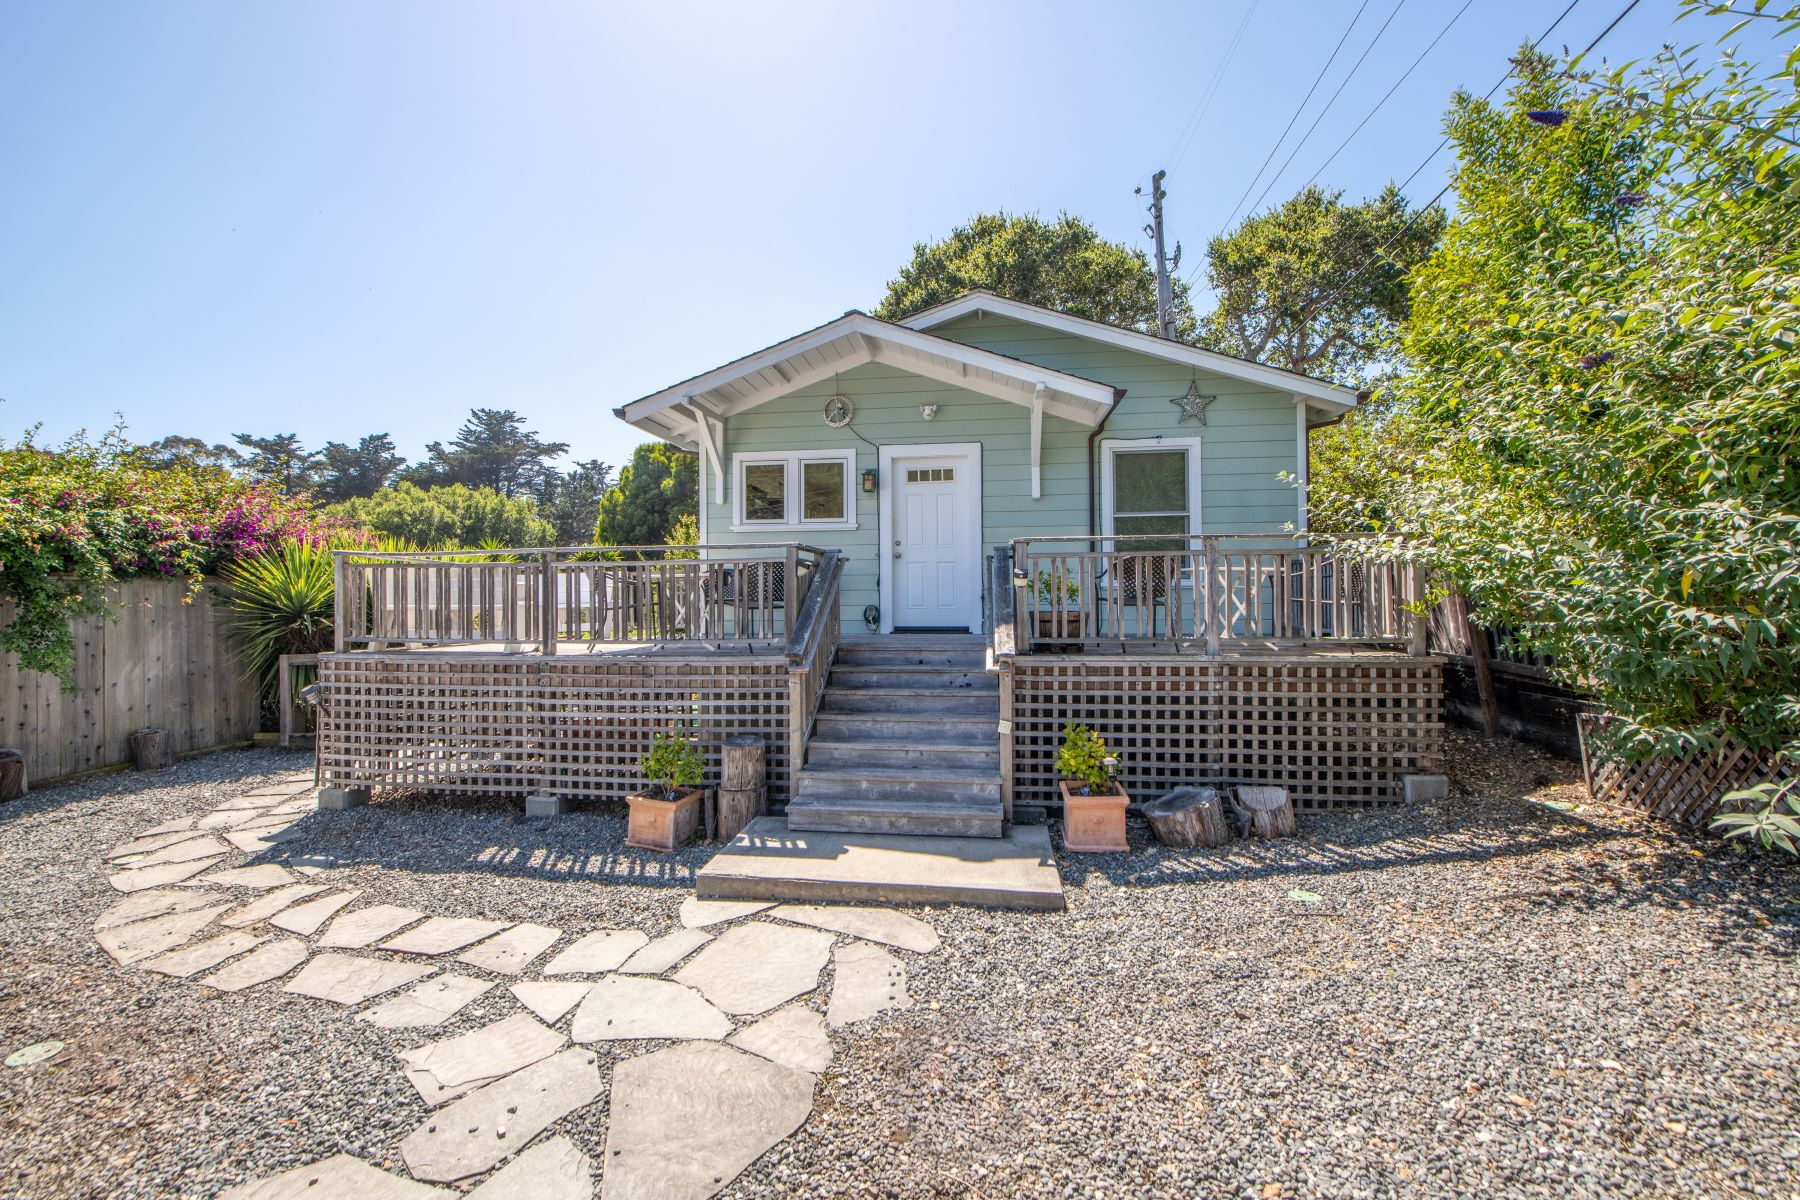 Single Family Homes for Sale at Handcrafted Home Nestled in the HIllside of Mt. Tam 91 Lincoln Ave Stinson Beach, California 94970 United States